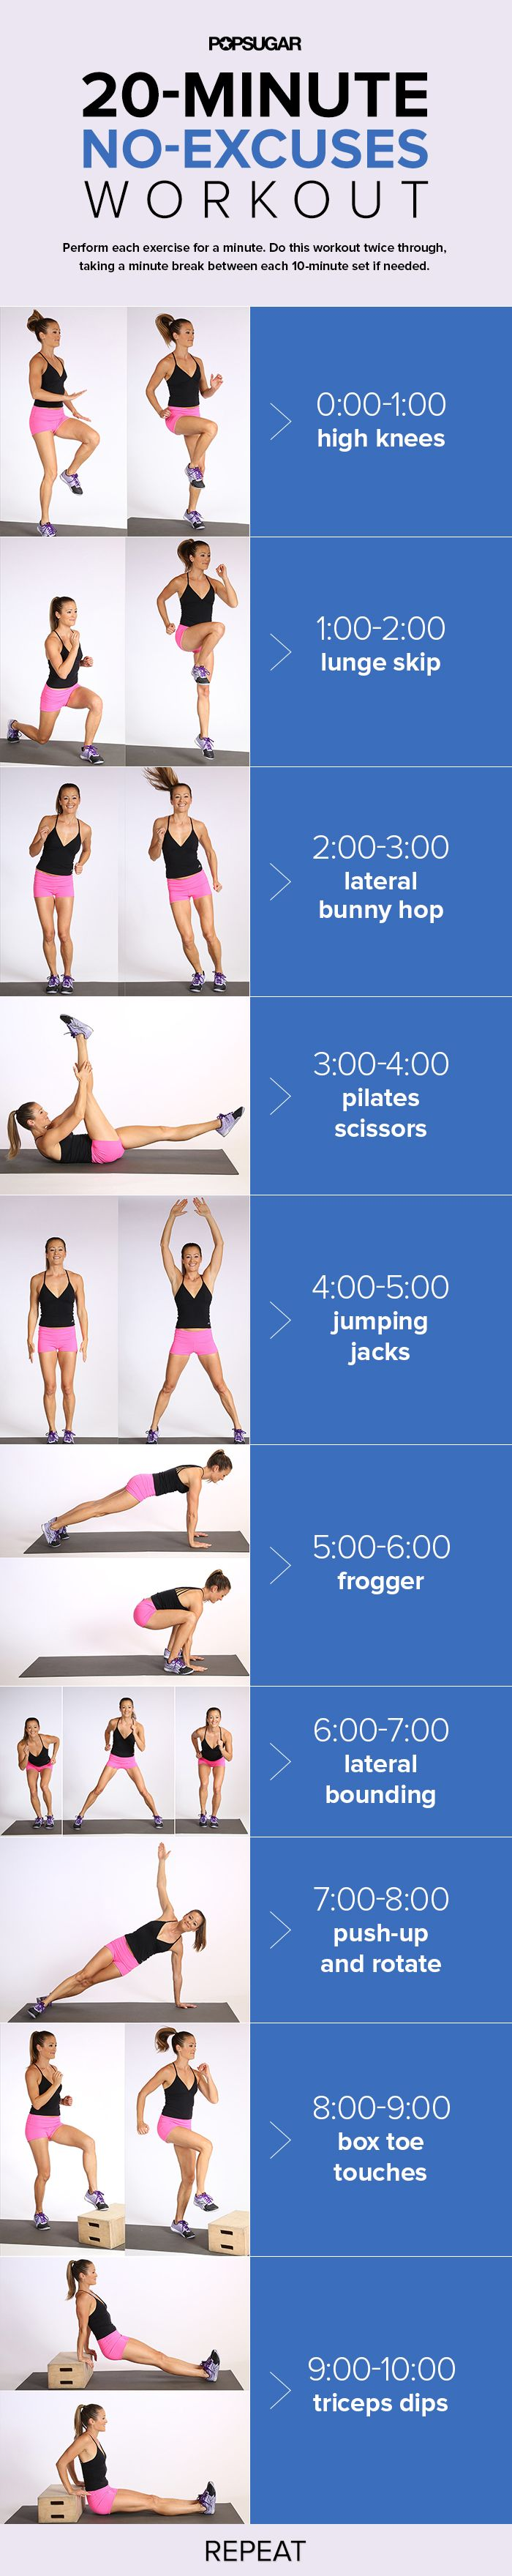 best Health and fitness images on Pinterest Exercise workouts